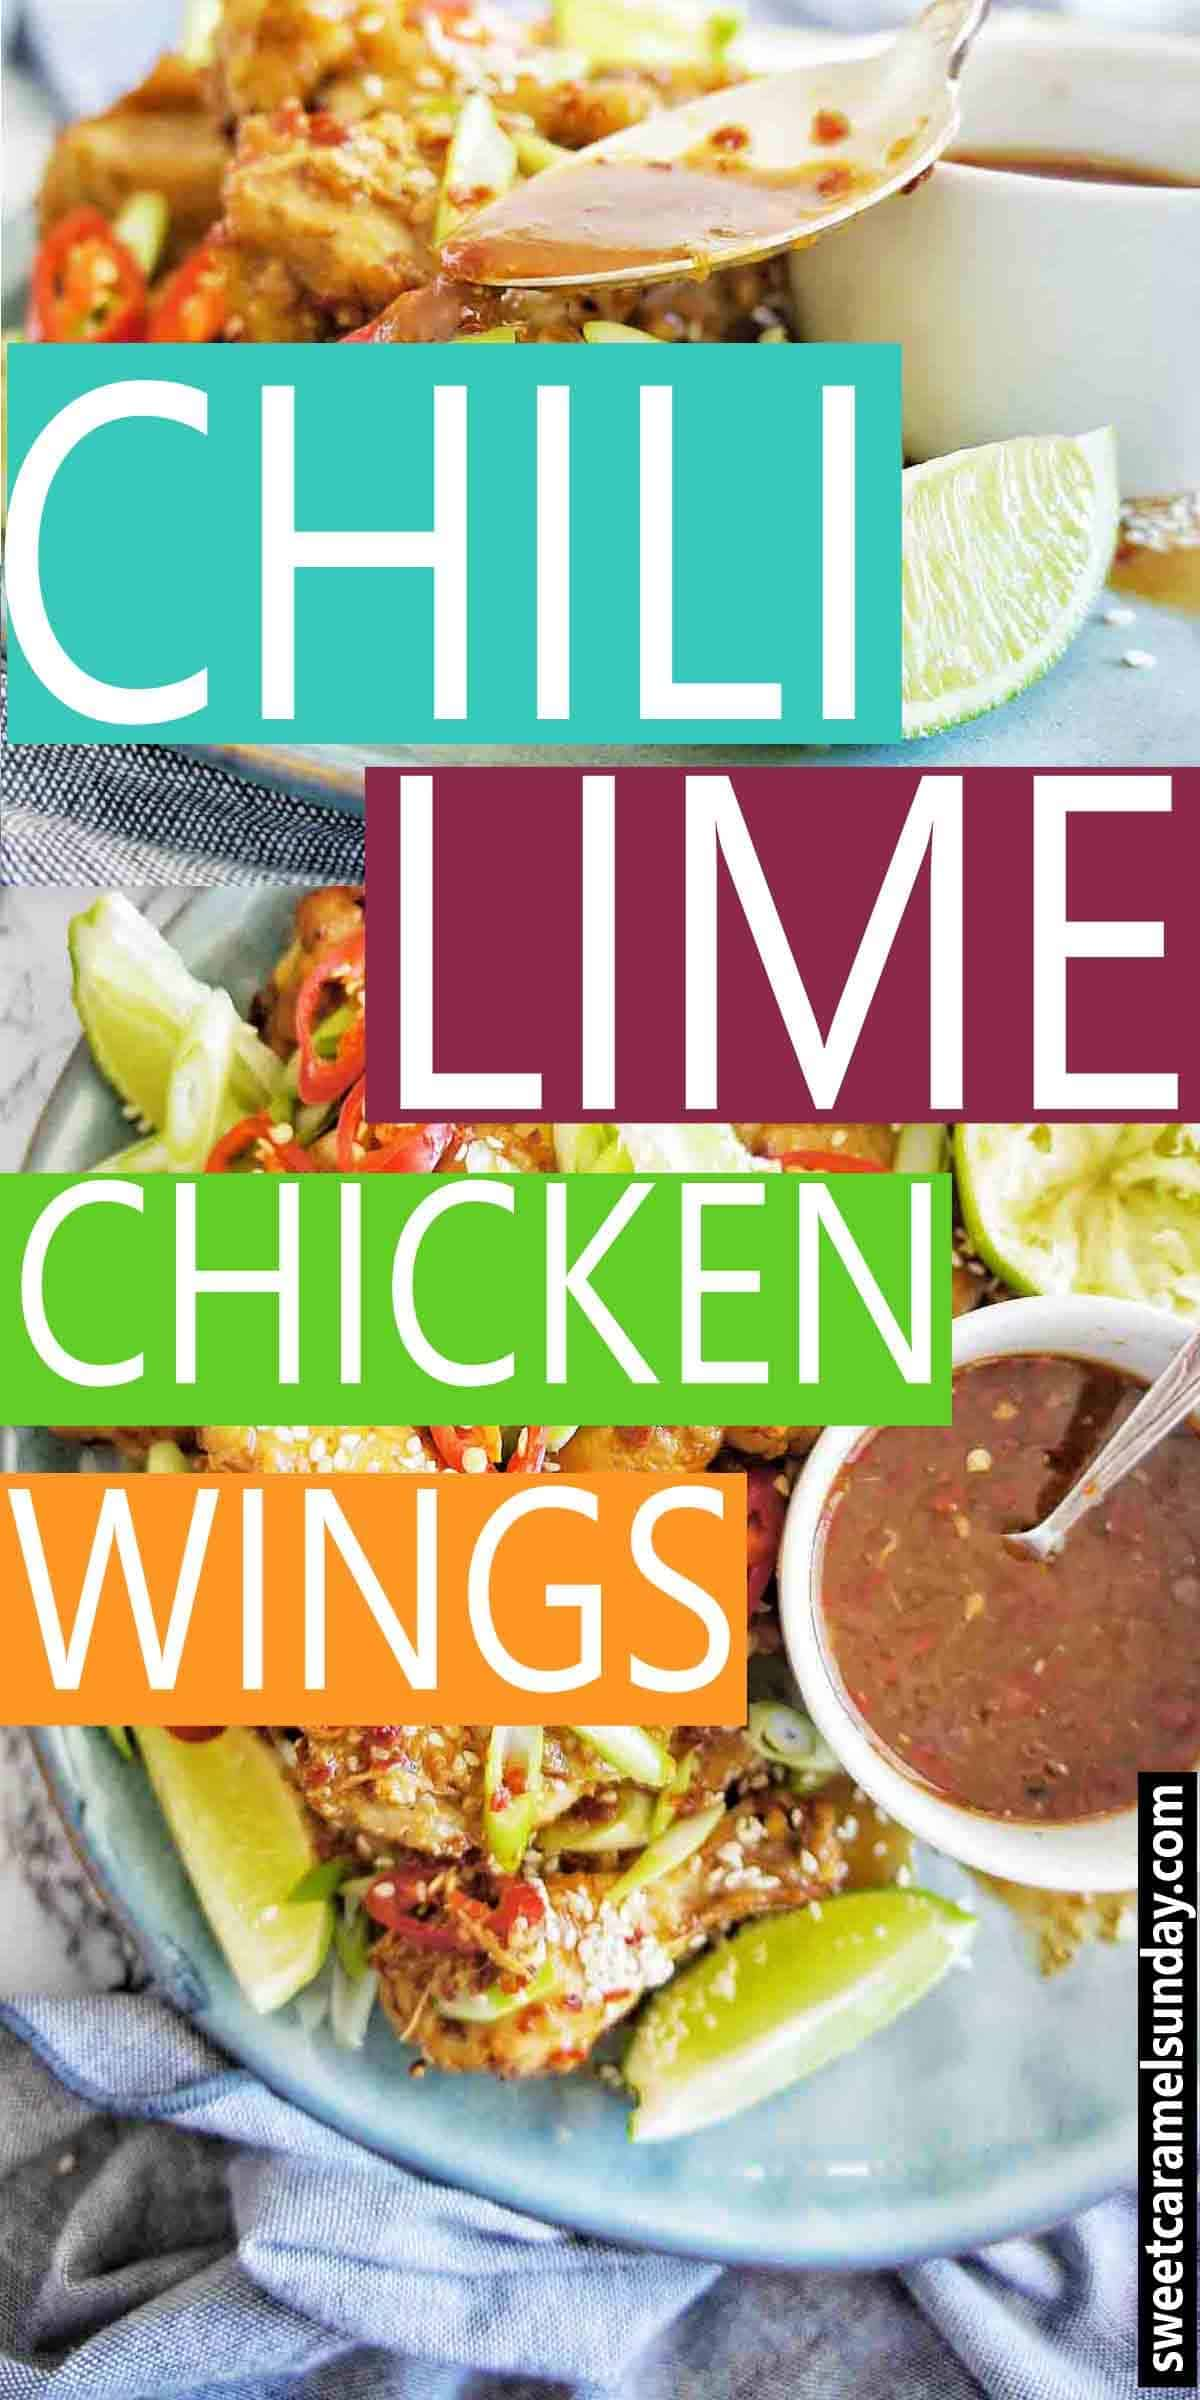 Chili Lime Chicken Wings with text overlay